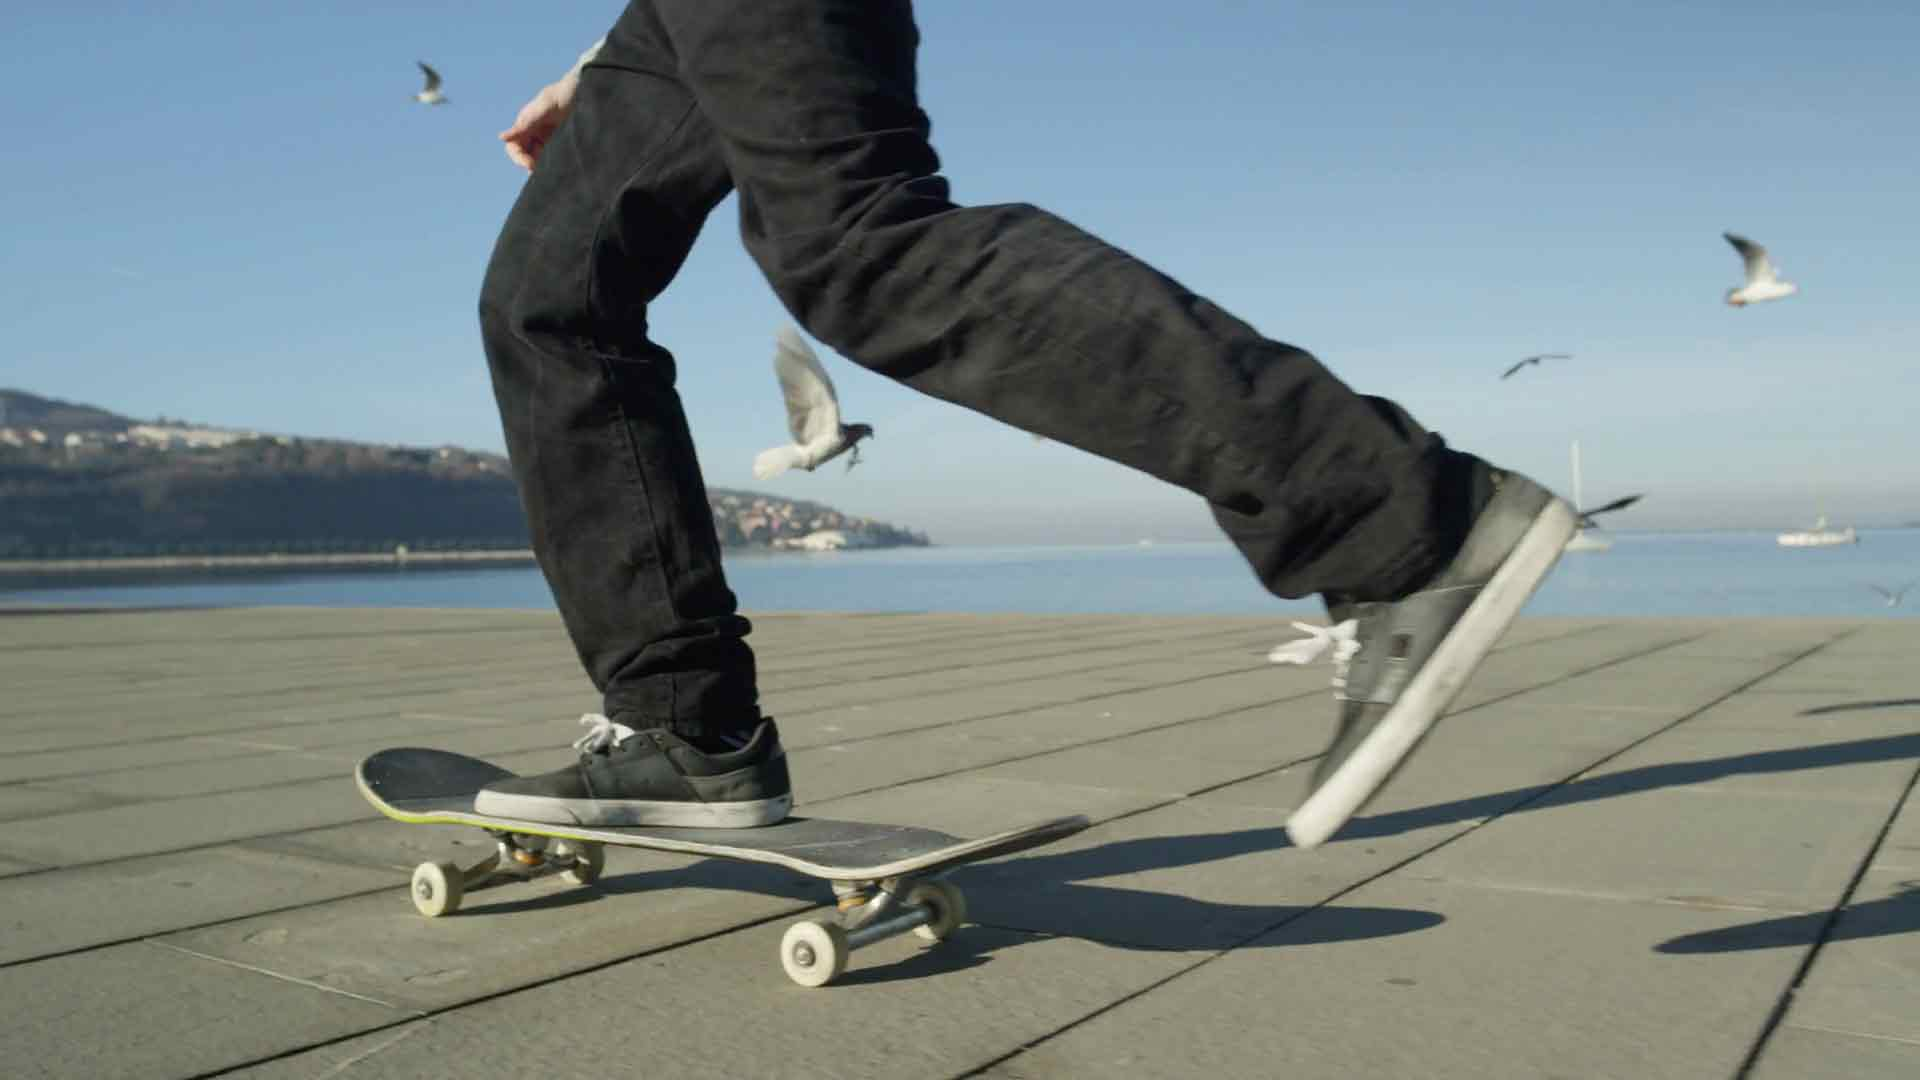 skateboard vs ripstik pros and cons_how to ride a razor ripstik